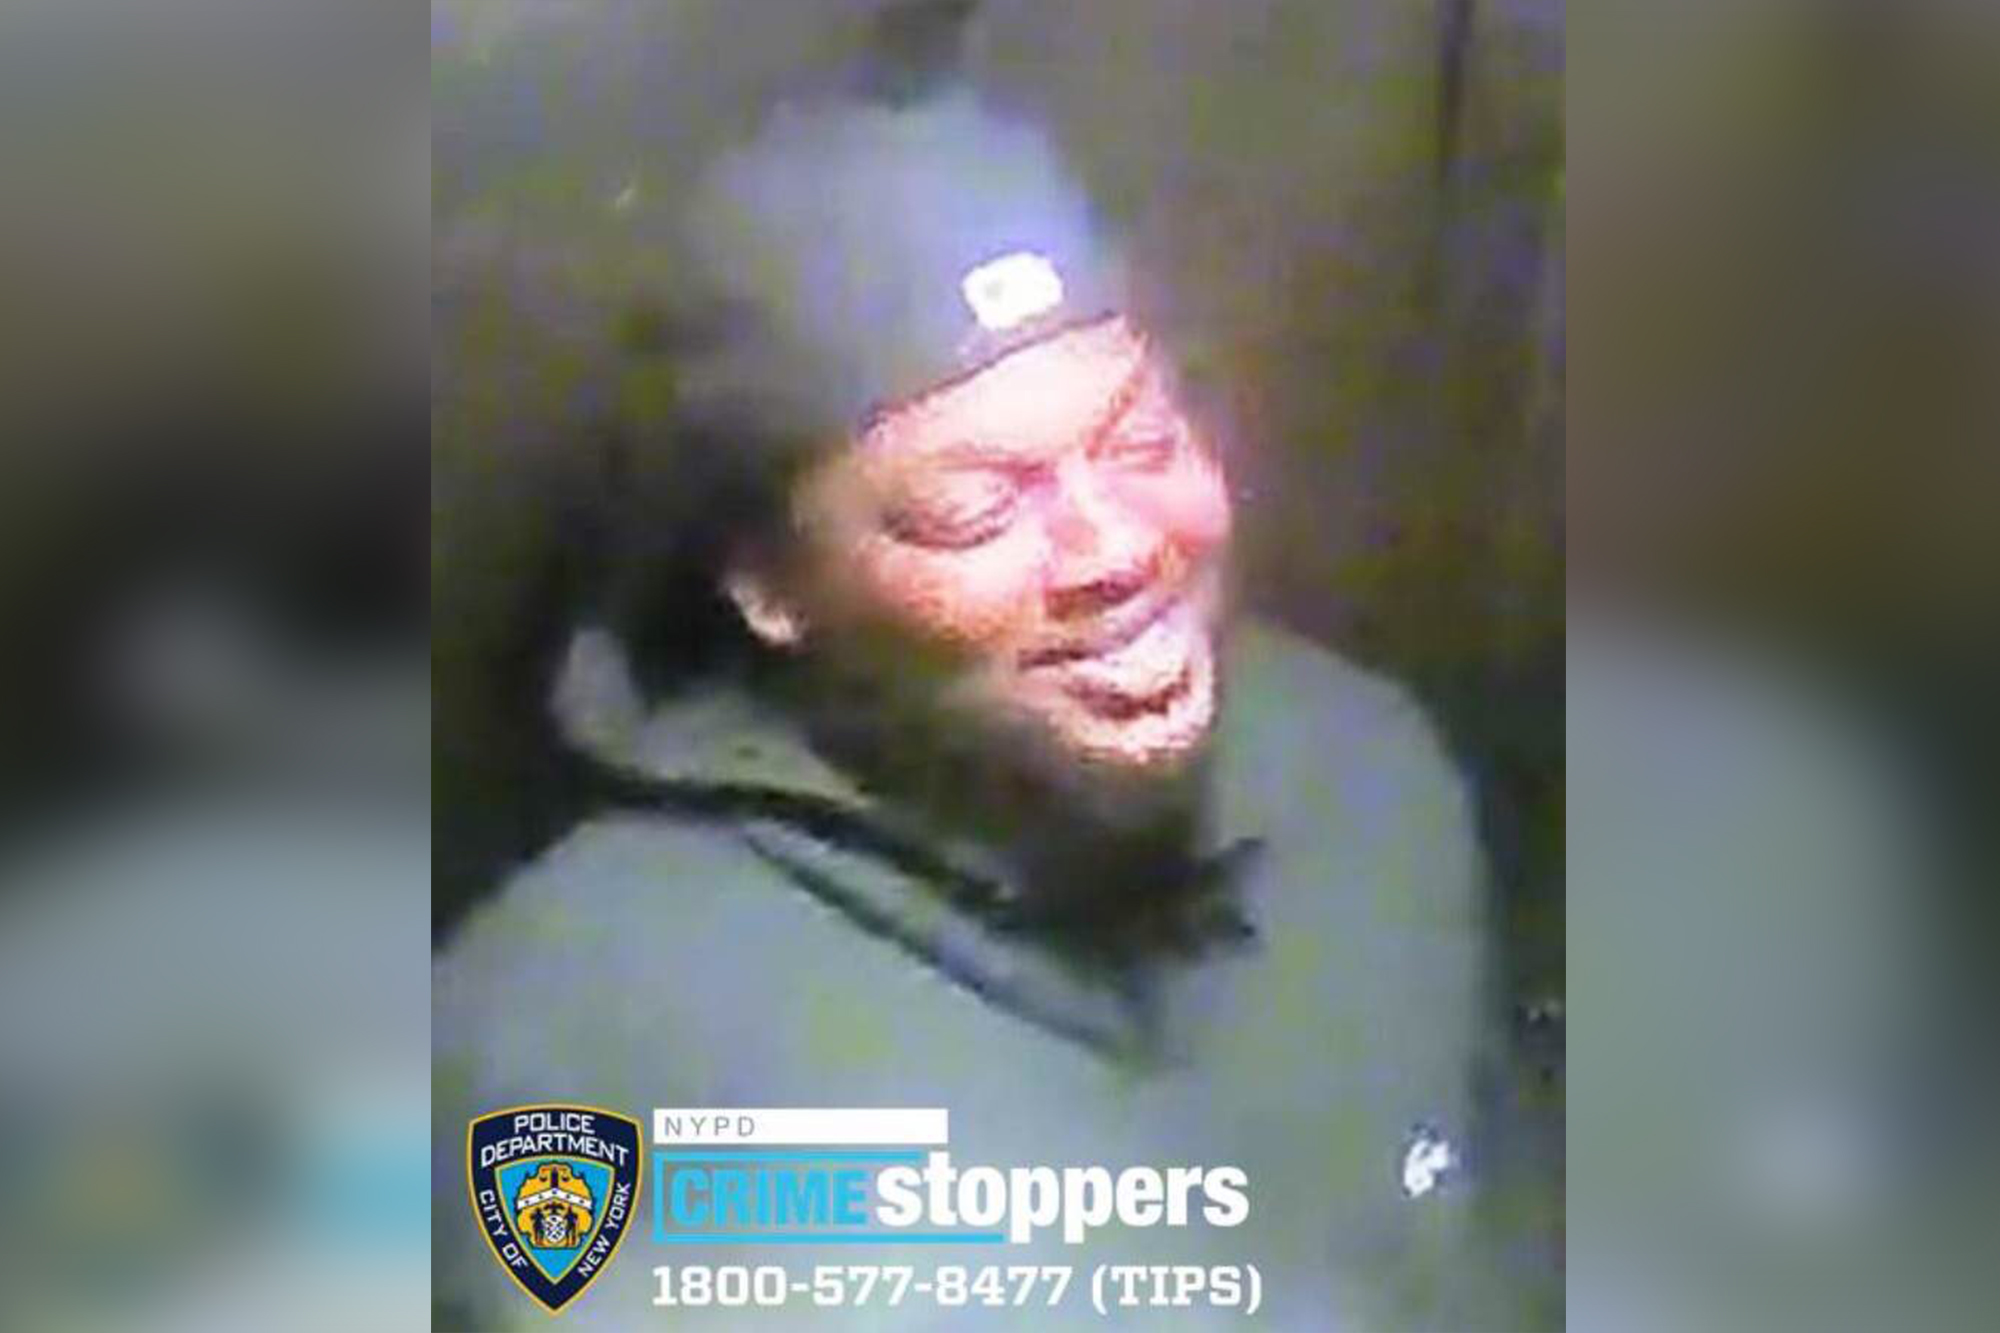 Suspect seen grinning minutes before shooting man in NYC: cops